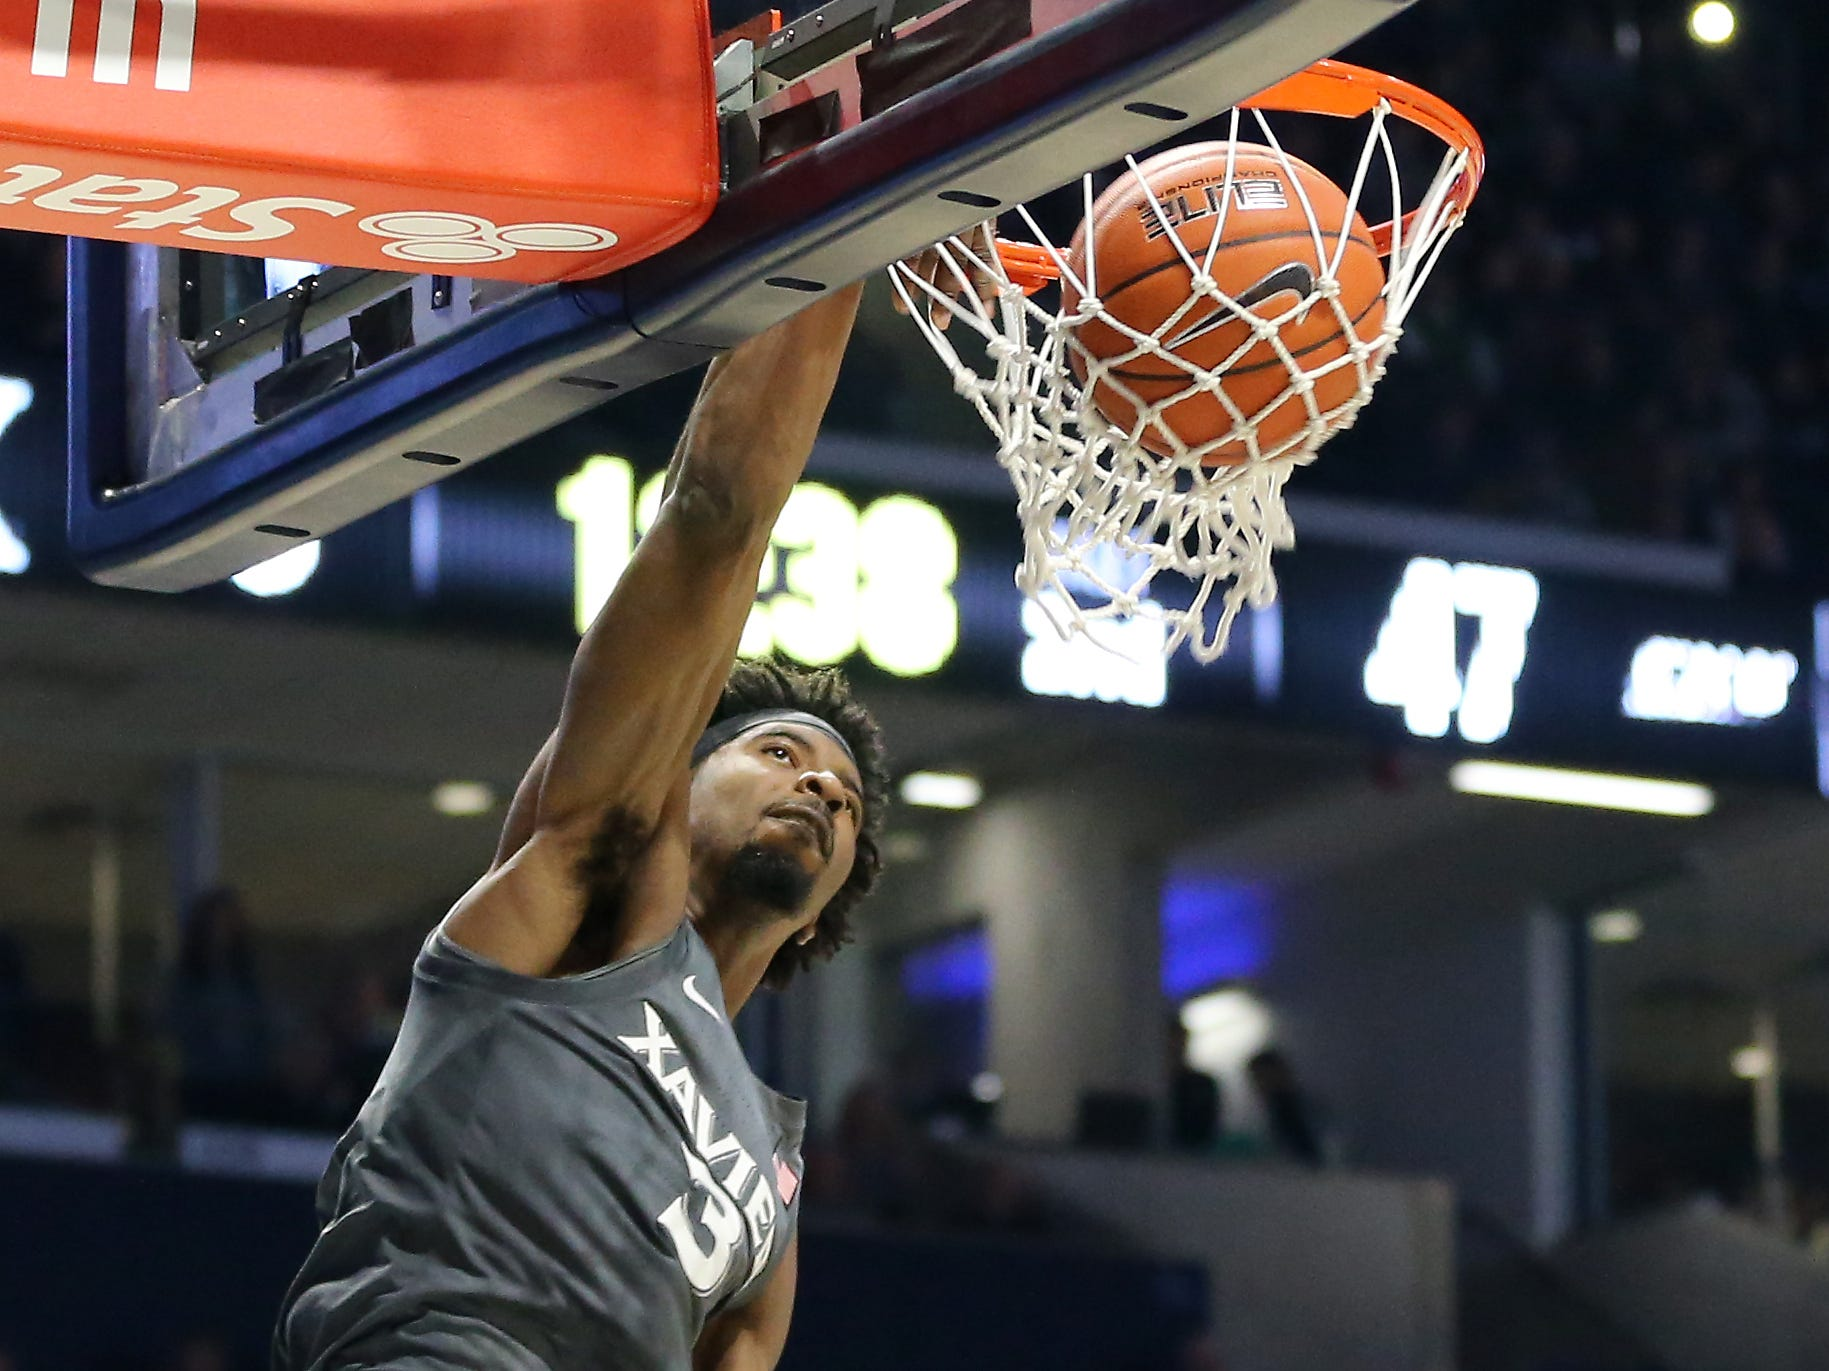 Xavier Musketeers guard Quentin Goodin (3) dunks in the second half of an NCAA college basketball game against the Eastern Kentucky Colonels, Saturday, Dec. 15, 2018, at Cintas Center in Cincinnati, Ohio